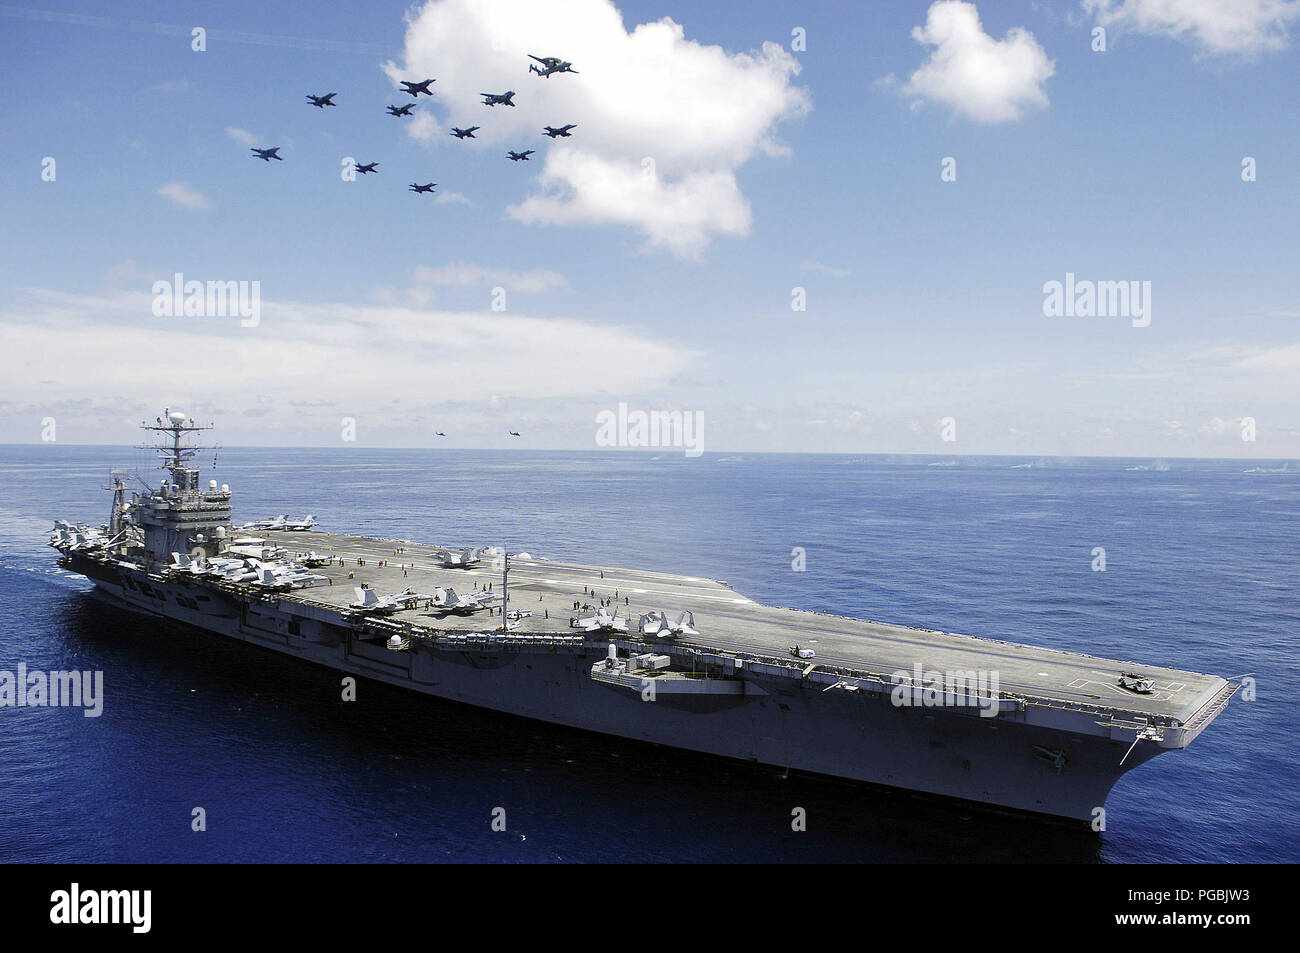 In the South China Sea, the US Navy (USN) Nimitz-class aircraft carrier USS ABRAHAM LINCOLN (CVN 72) and aircraft assigned to Carrier Air Wing Two (CVW-2) perform an aerial demonstration. - Stock Image